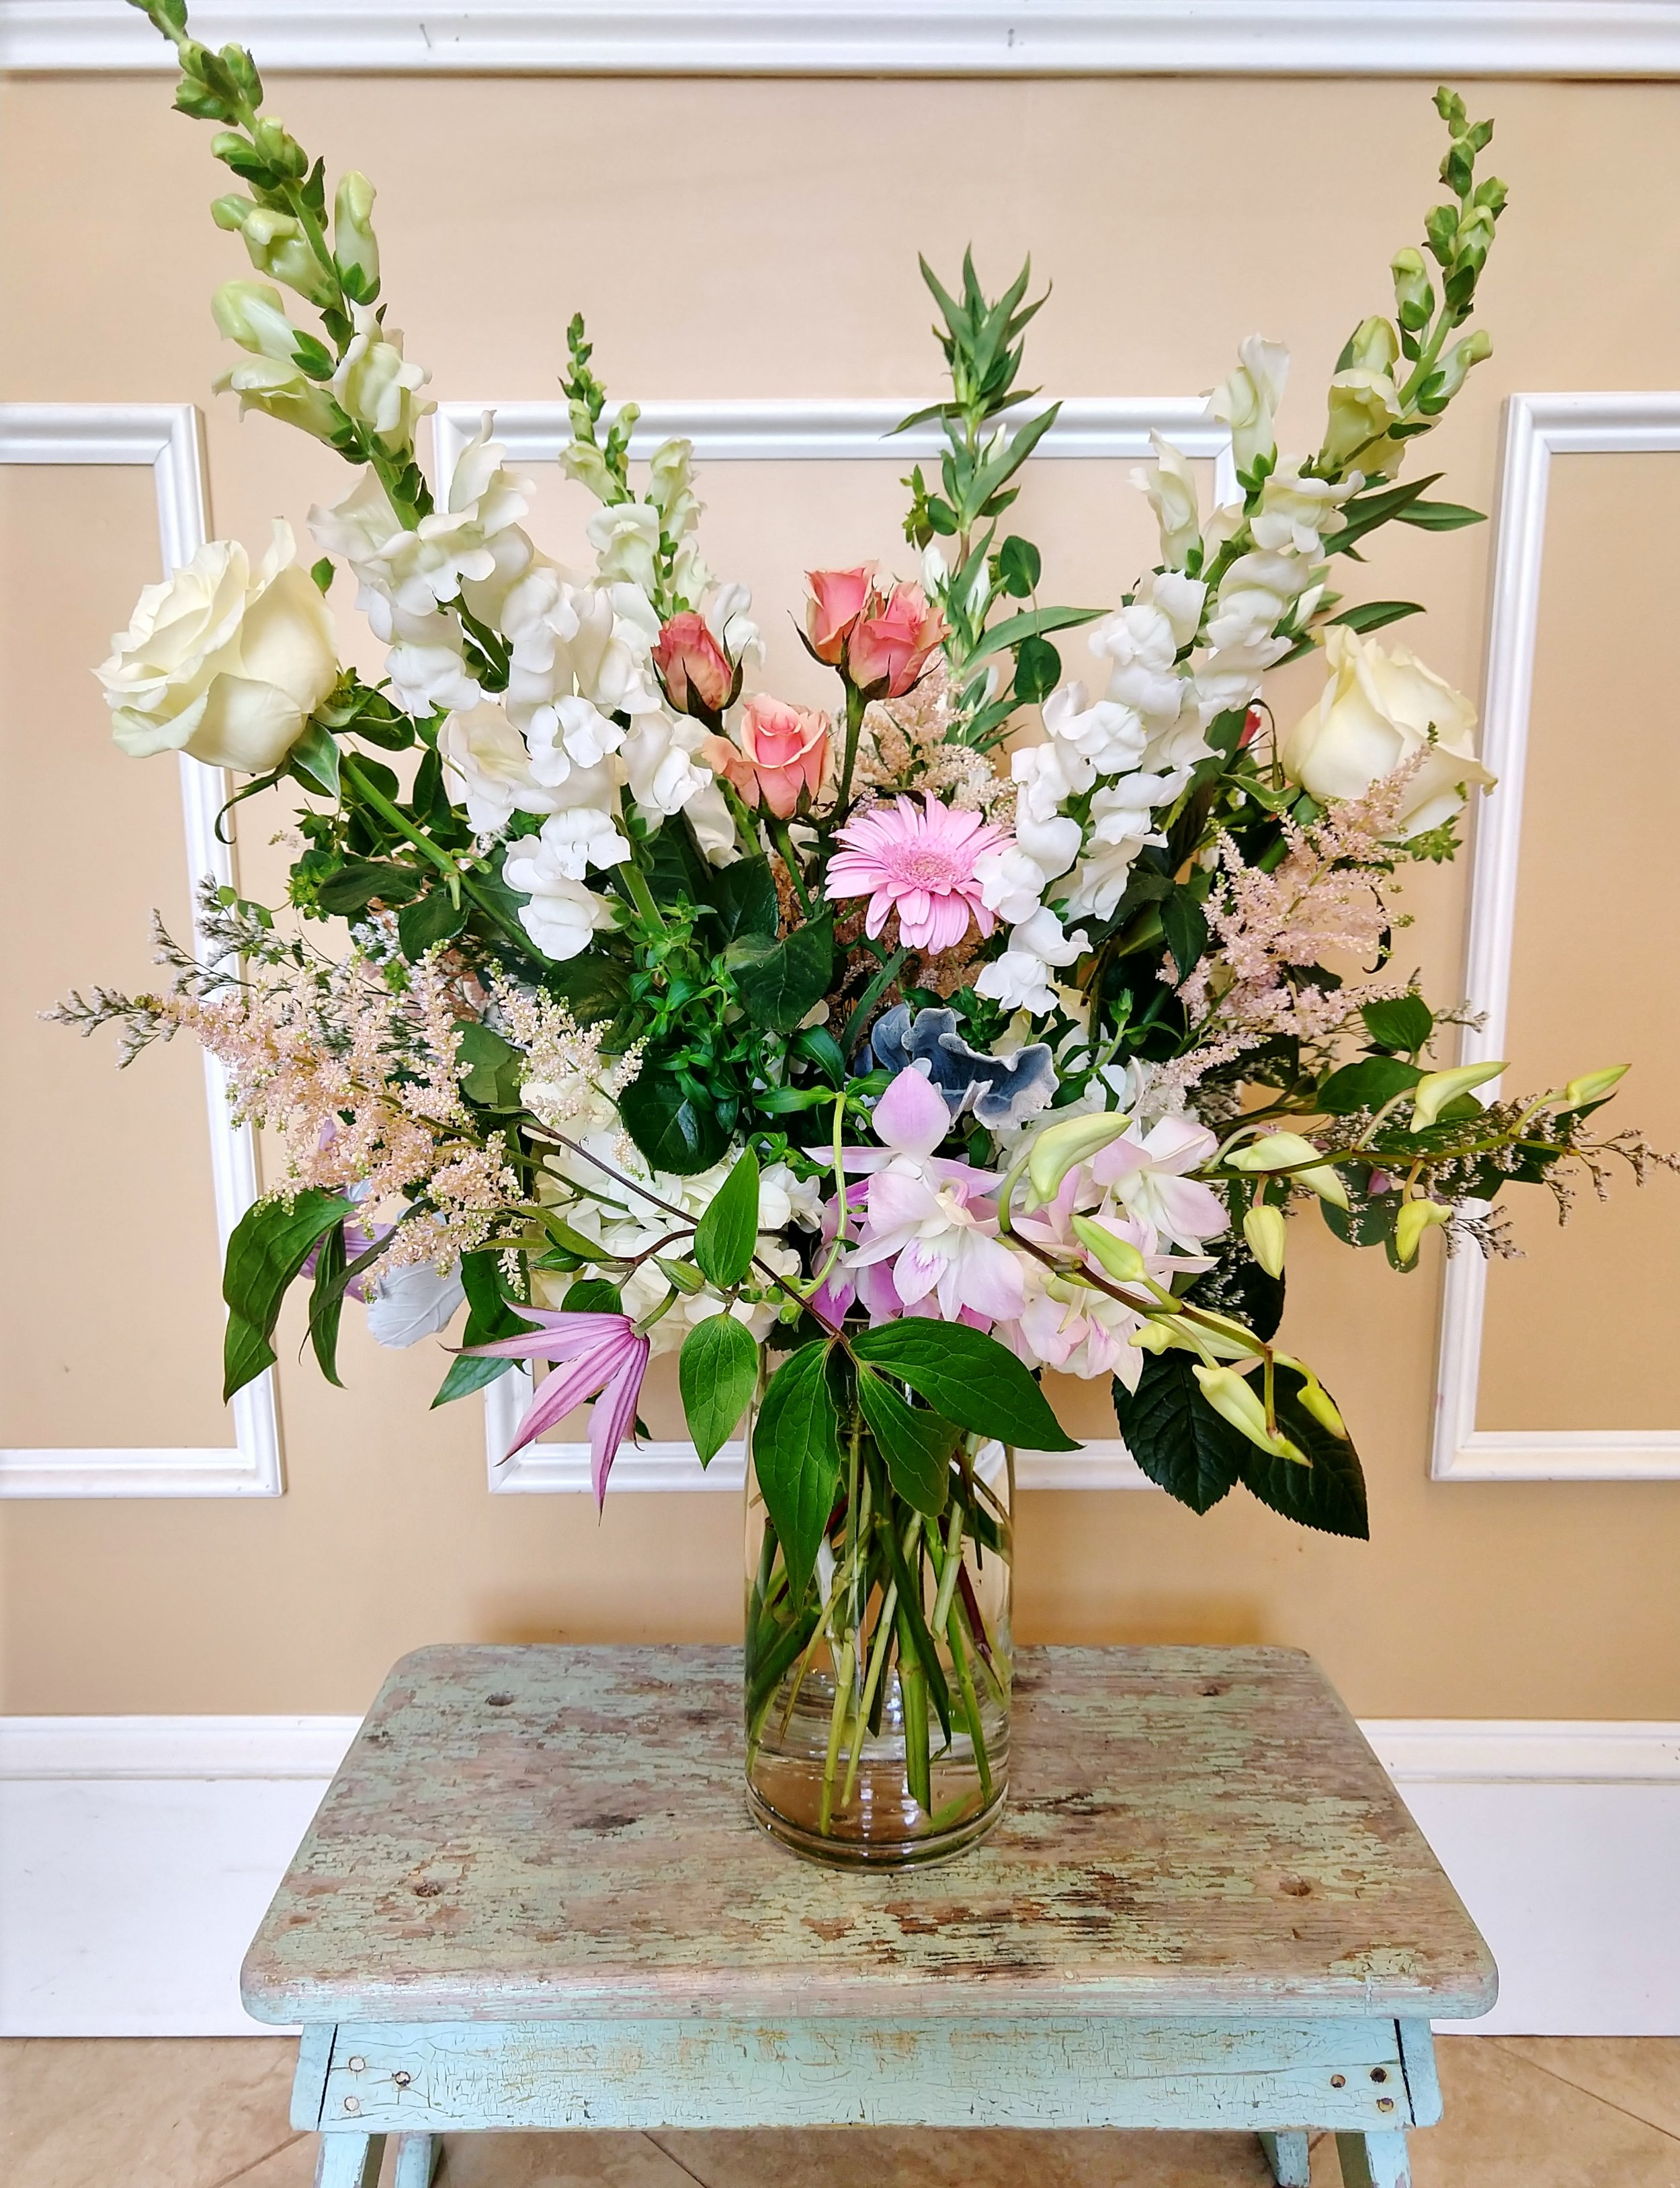 A11 $125-$200 Tall classical style vase arrangement. $125 as shown.